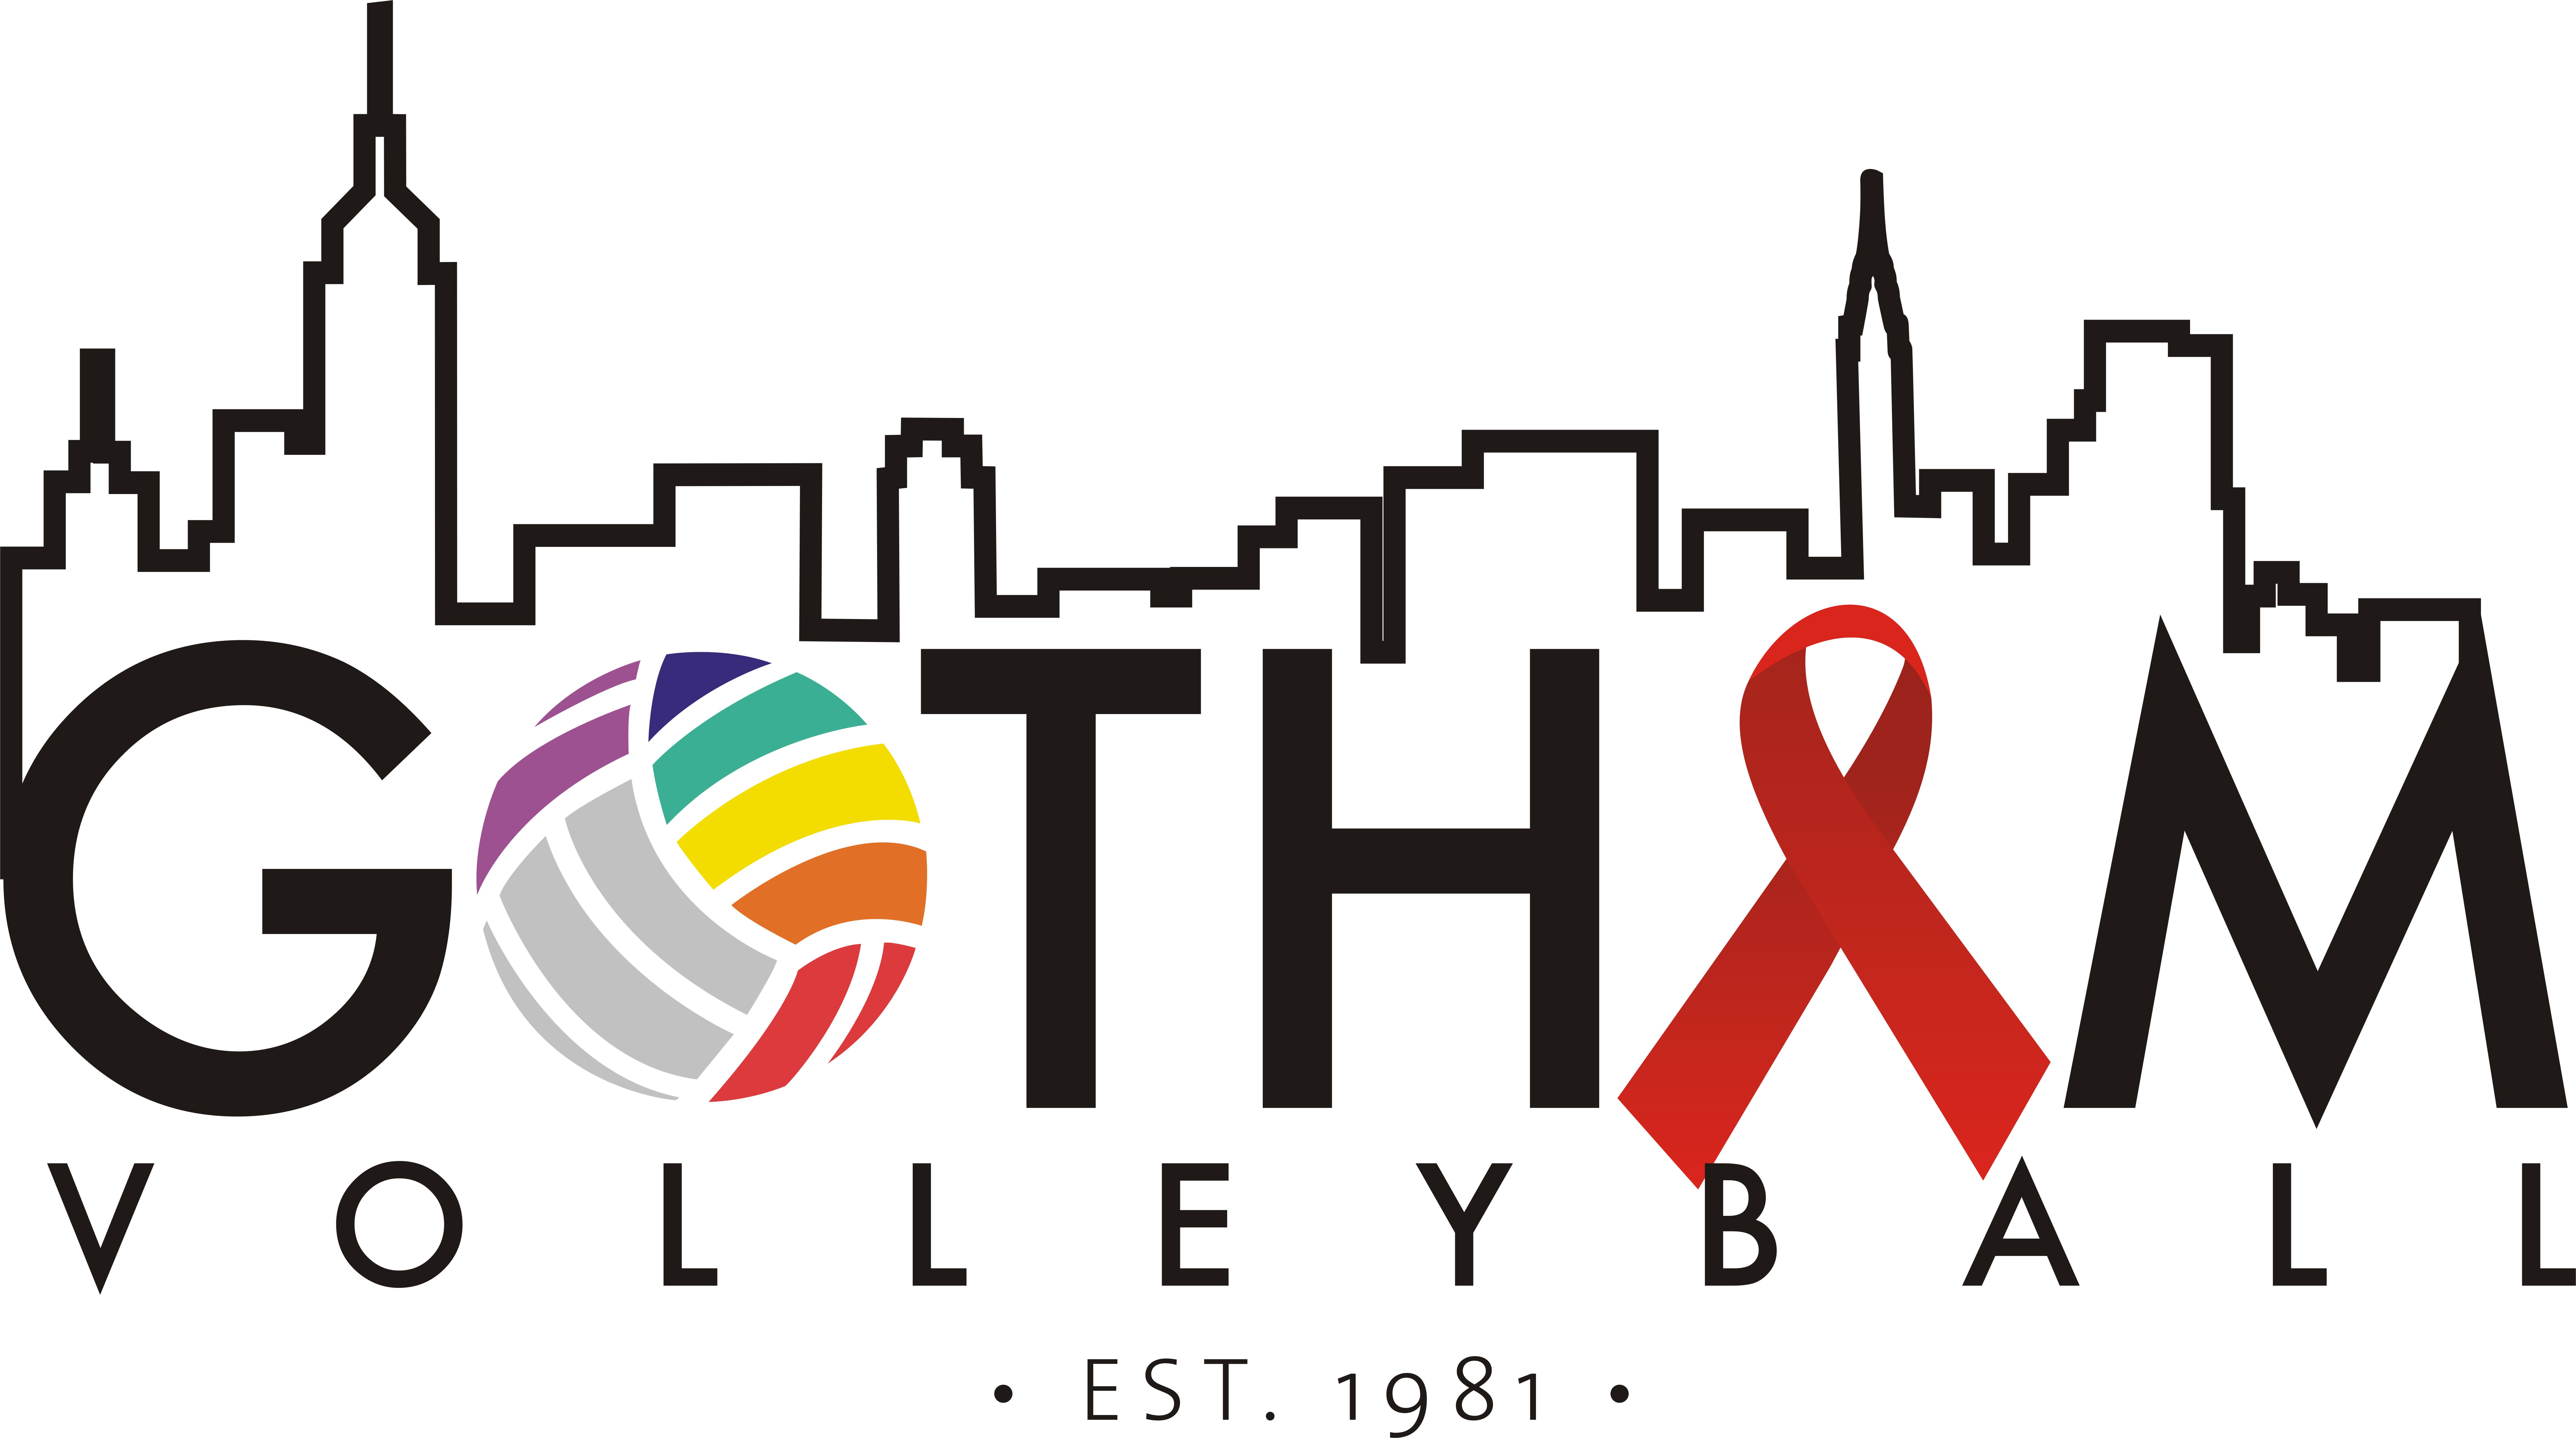 aids walk 2010 logo